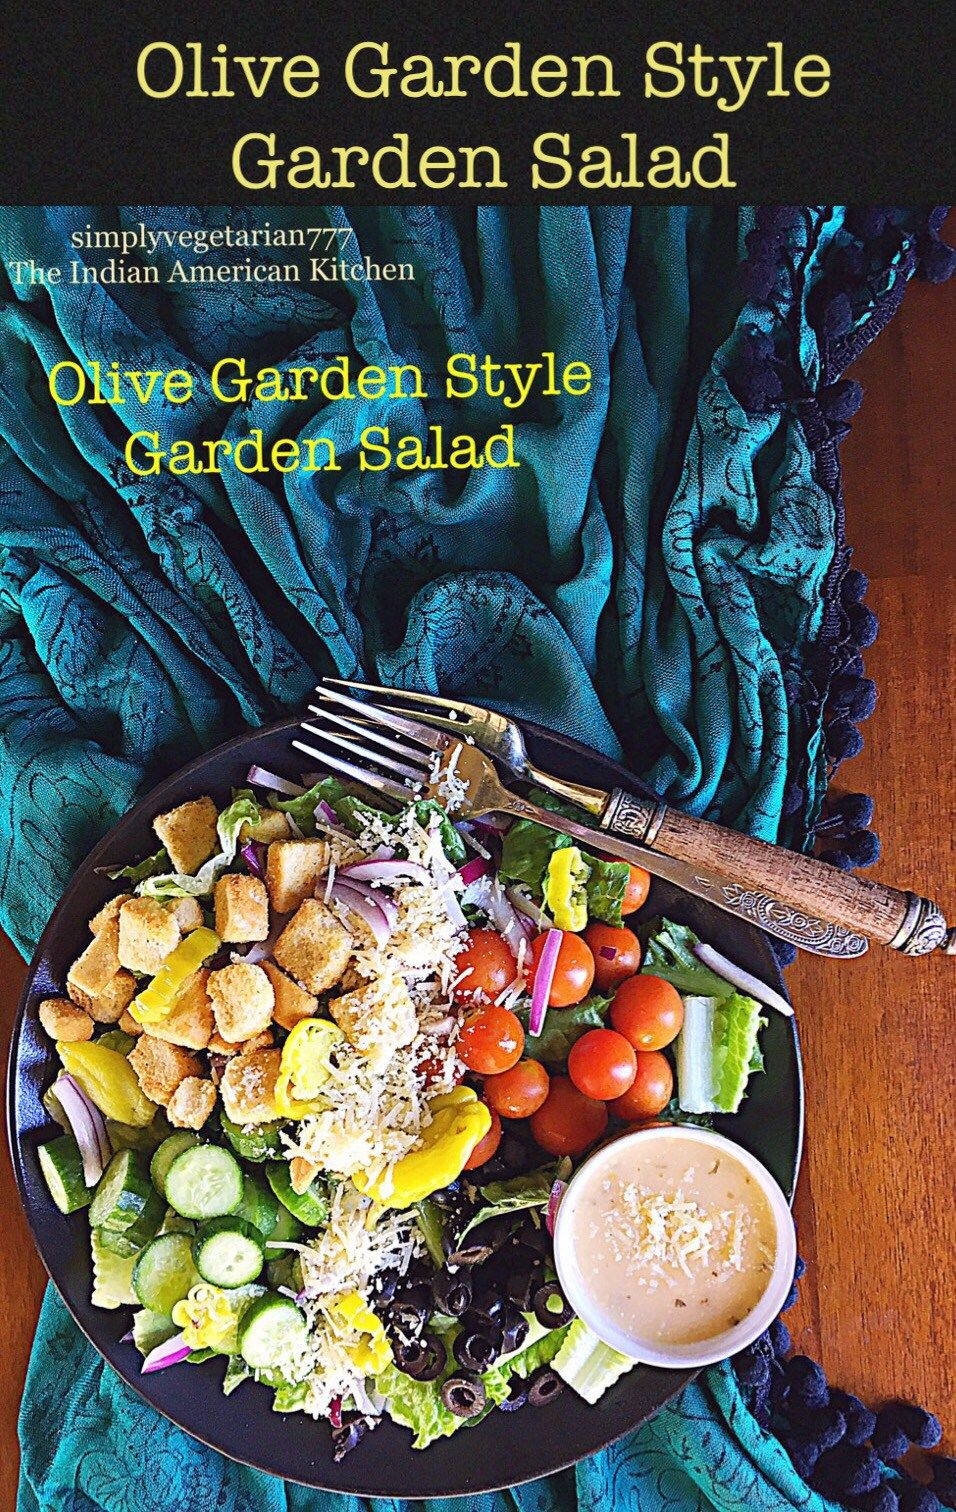 Olive Garden Style Garden Salad is an easy recipe to make